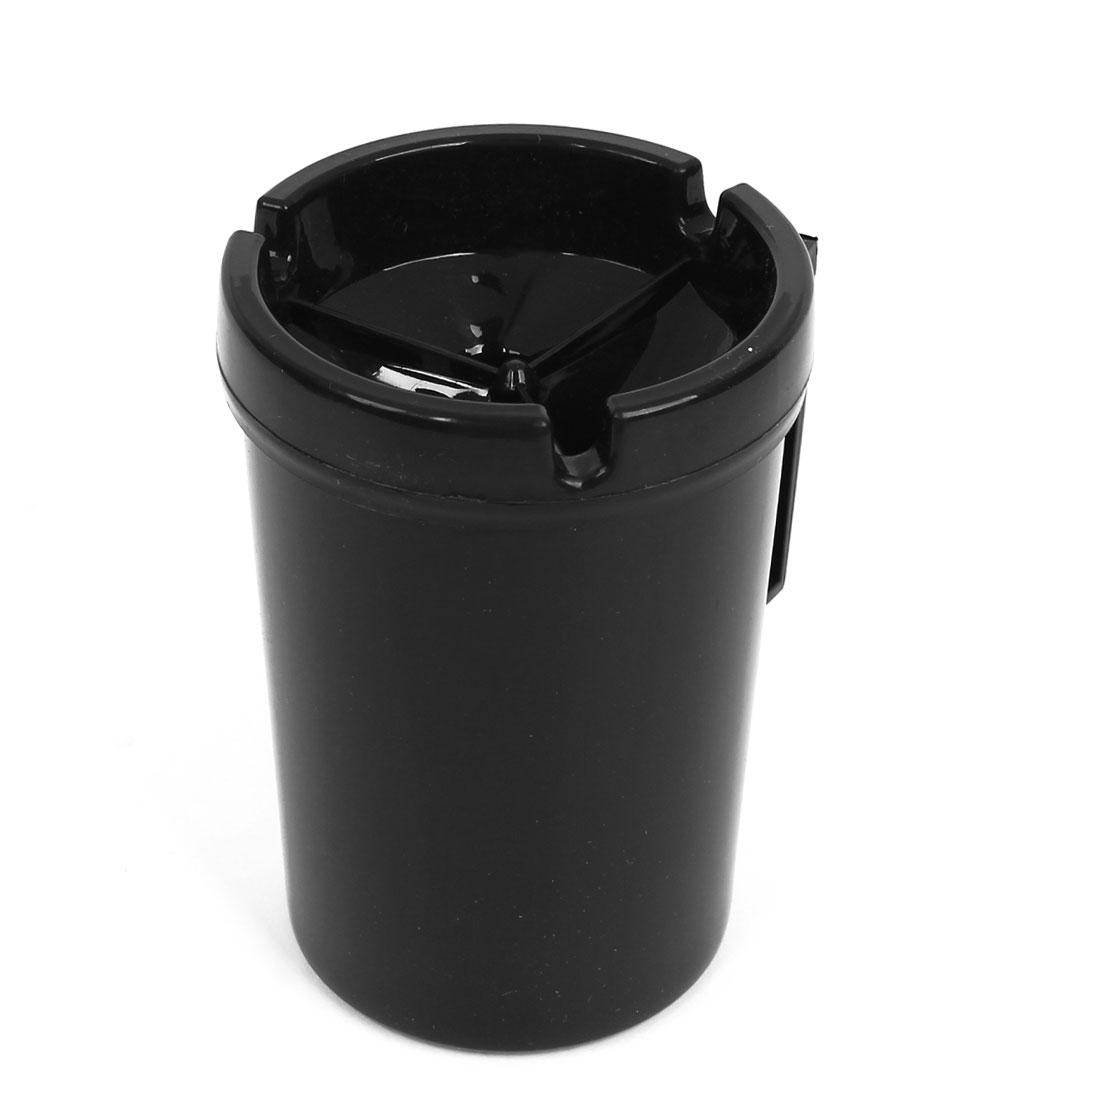 Car Black 3 Groove Cup Shape Cigar Cigarette Ash Holder Container Ashtray